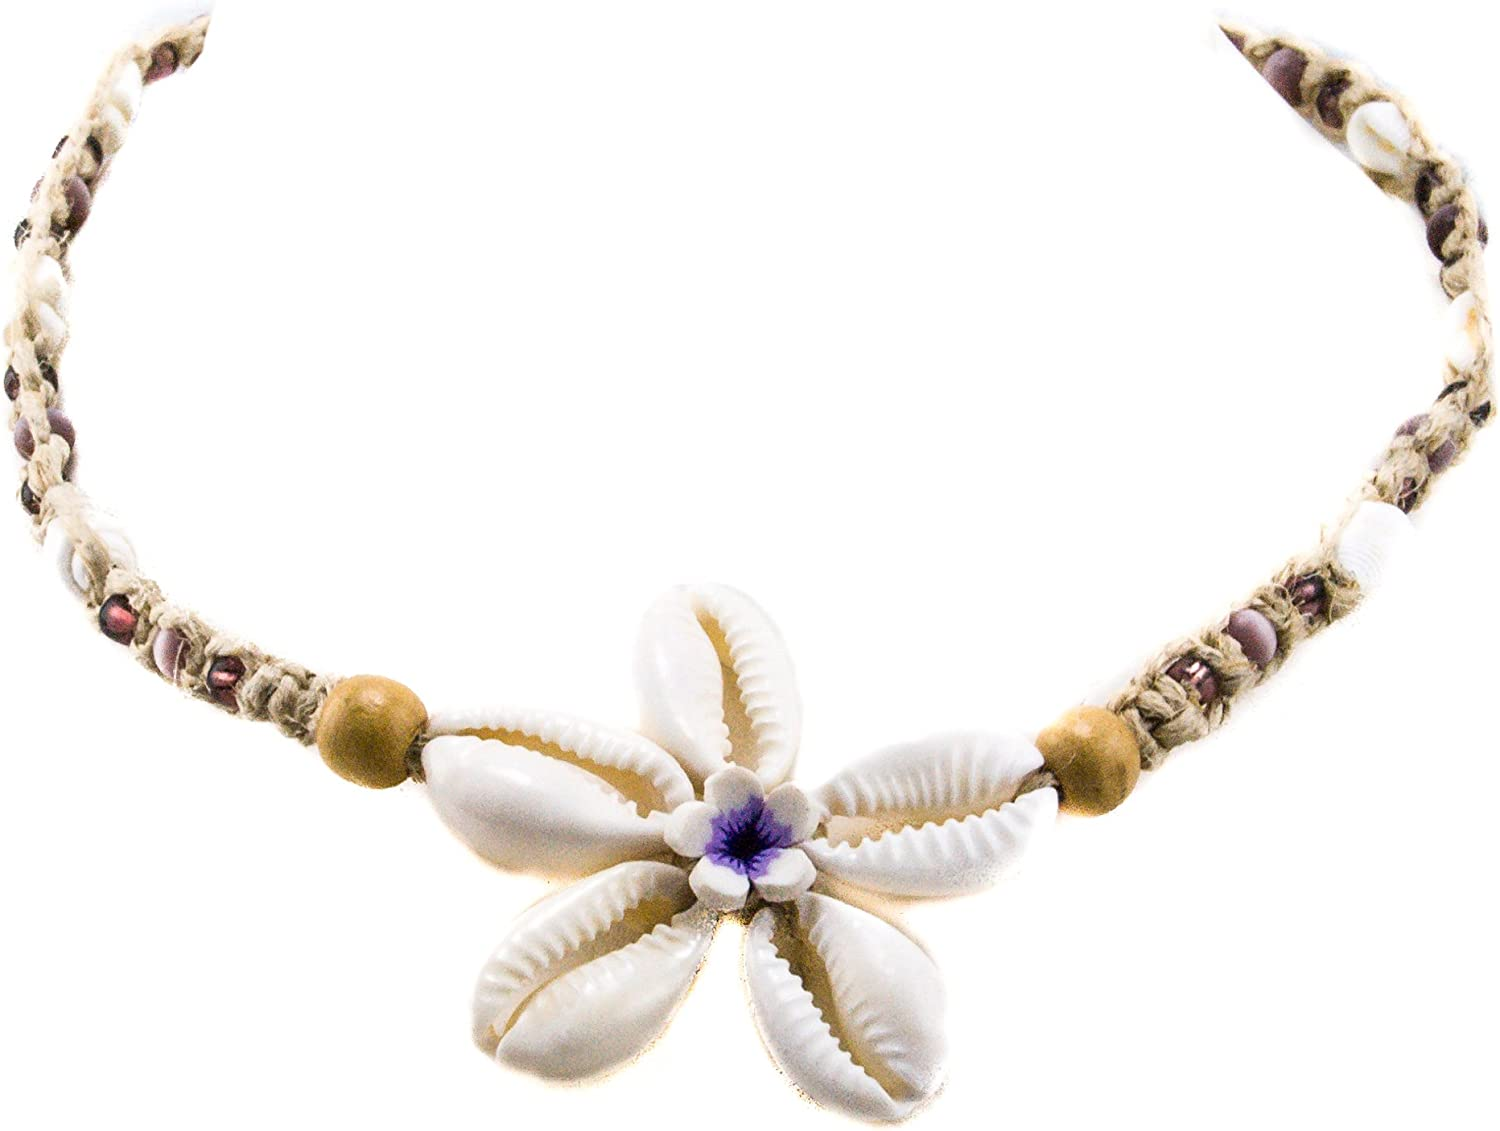 BlueRica Hemp Choker Necklace with Cowrie and Fimo Flower Pendant Purple Glass and Purple Catseye Beads